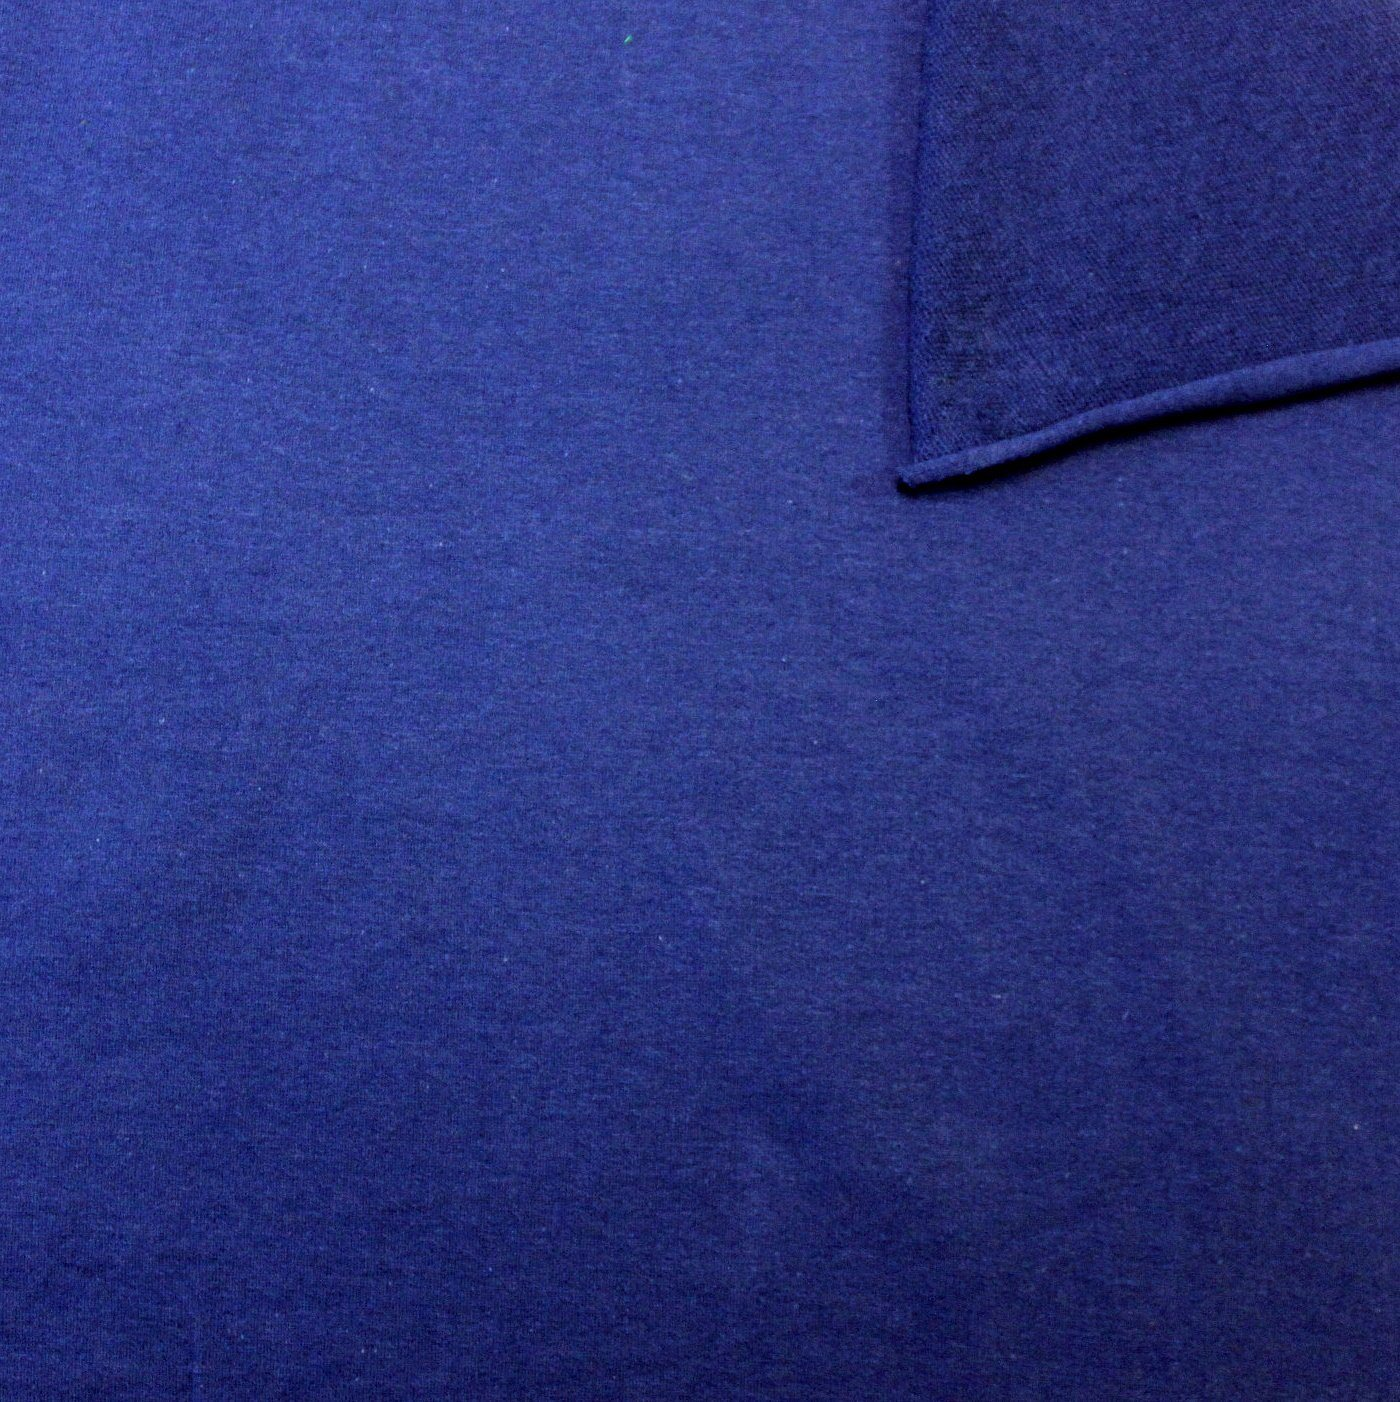 Solid Royal Blue 4 Way Stretch French Terry Knit Fabric With Spandex - Raspberry Creek Fabrics Knit Fabric